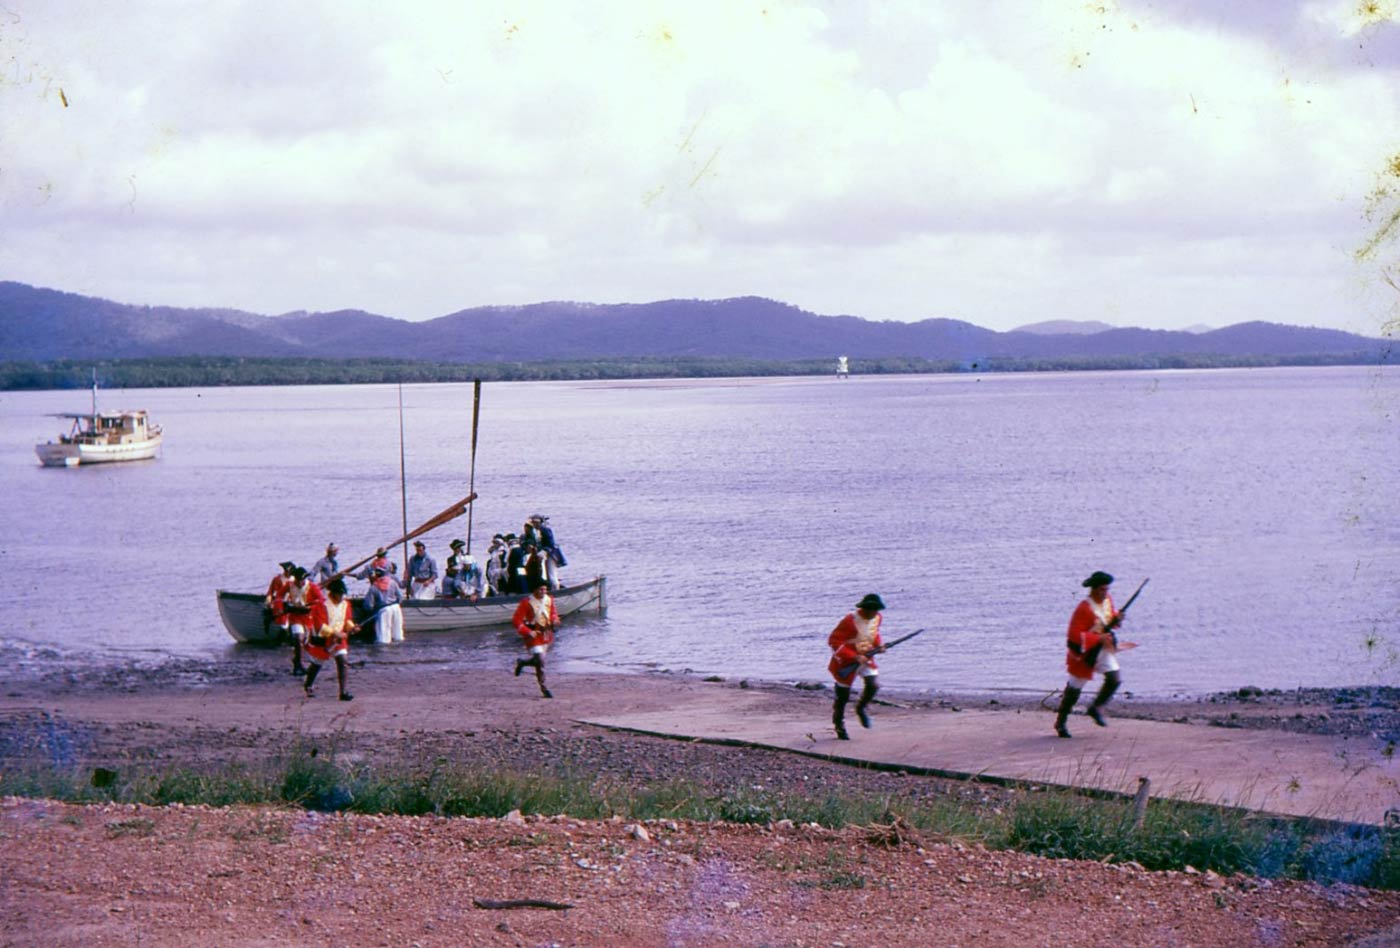 Colour photo of men in costume disembarking a rowboat on a large river and running up a boat ramp. - click to view larger image